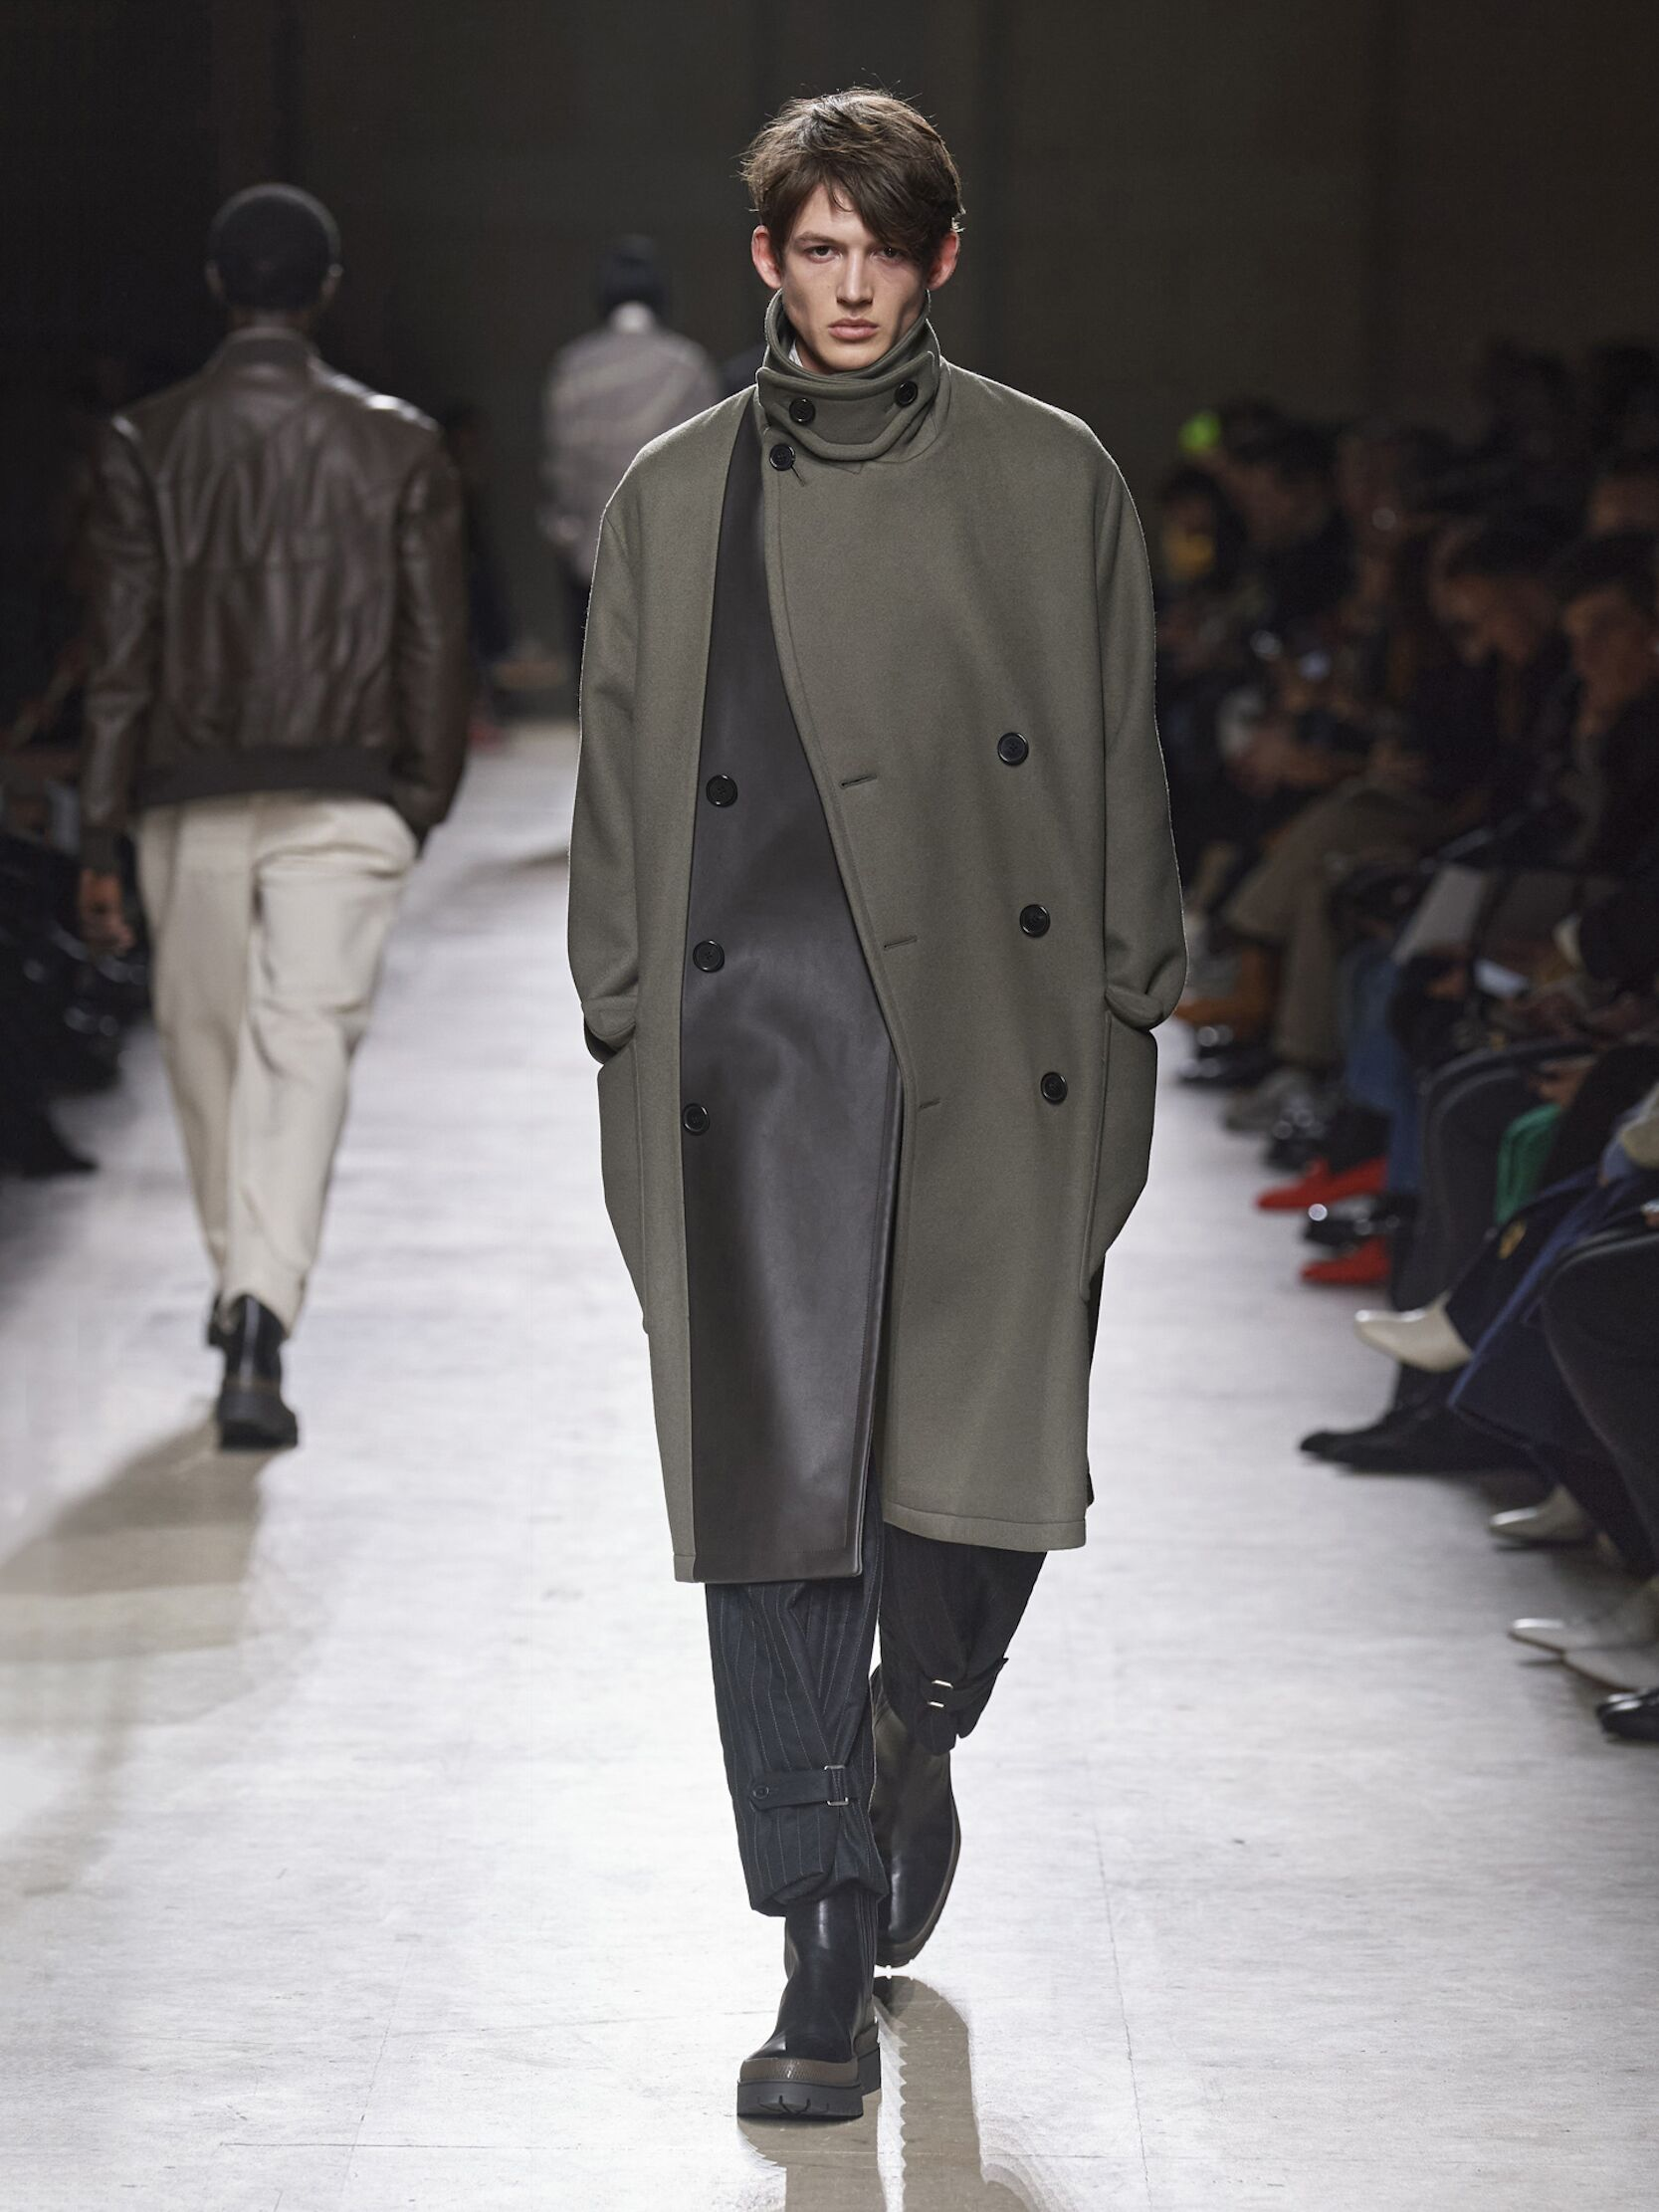 Hermès Paris Fashion Week Menswear Trends